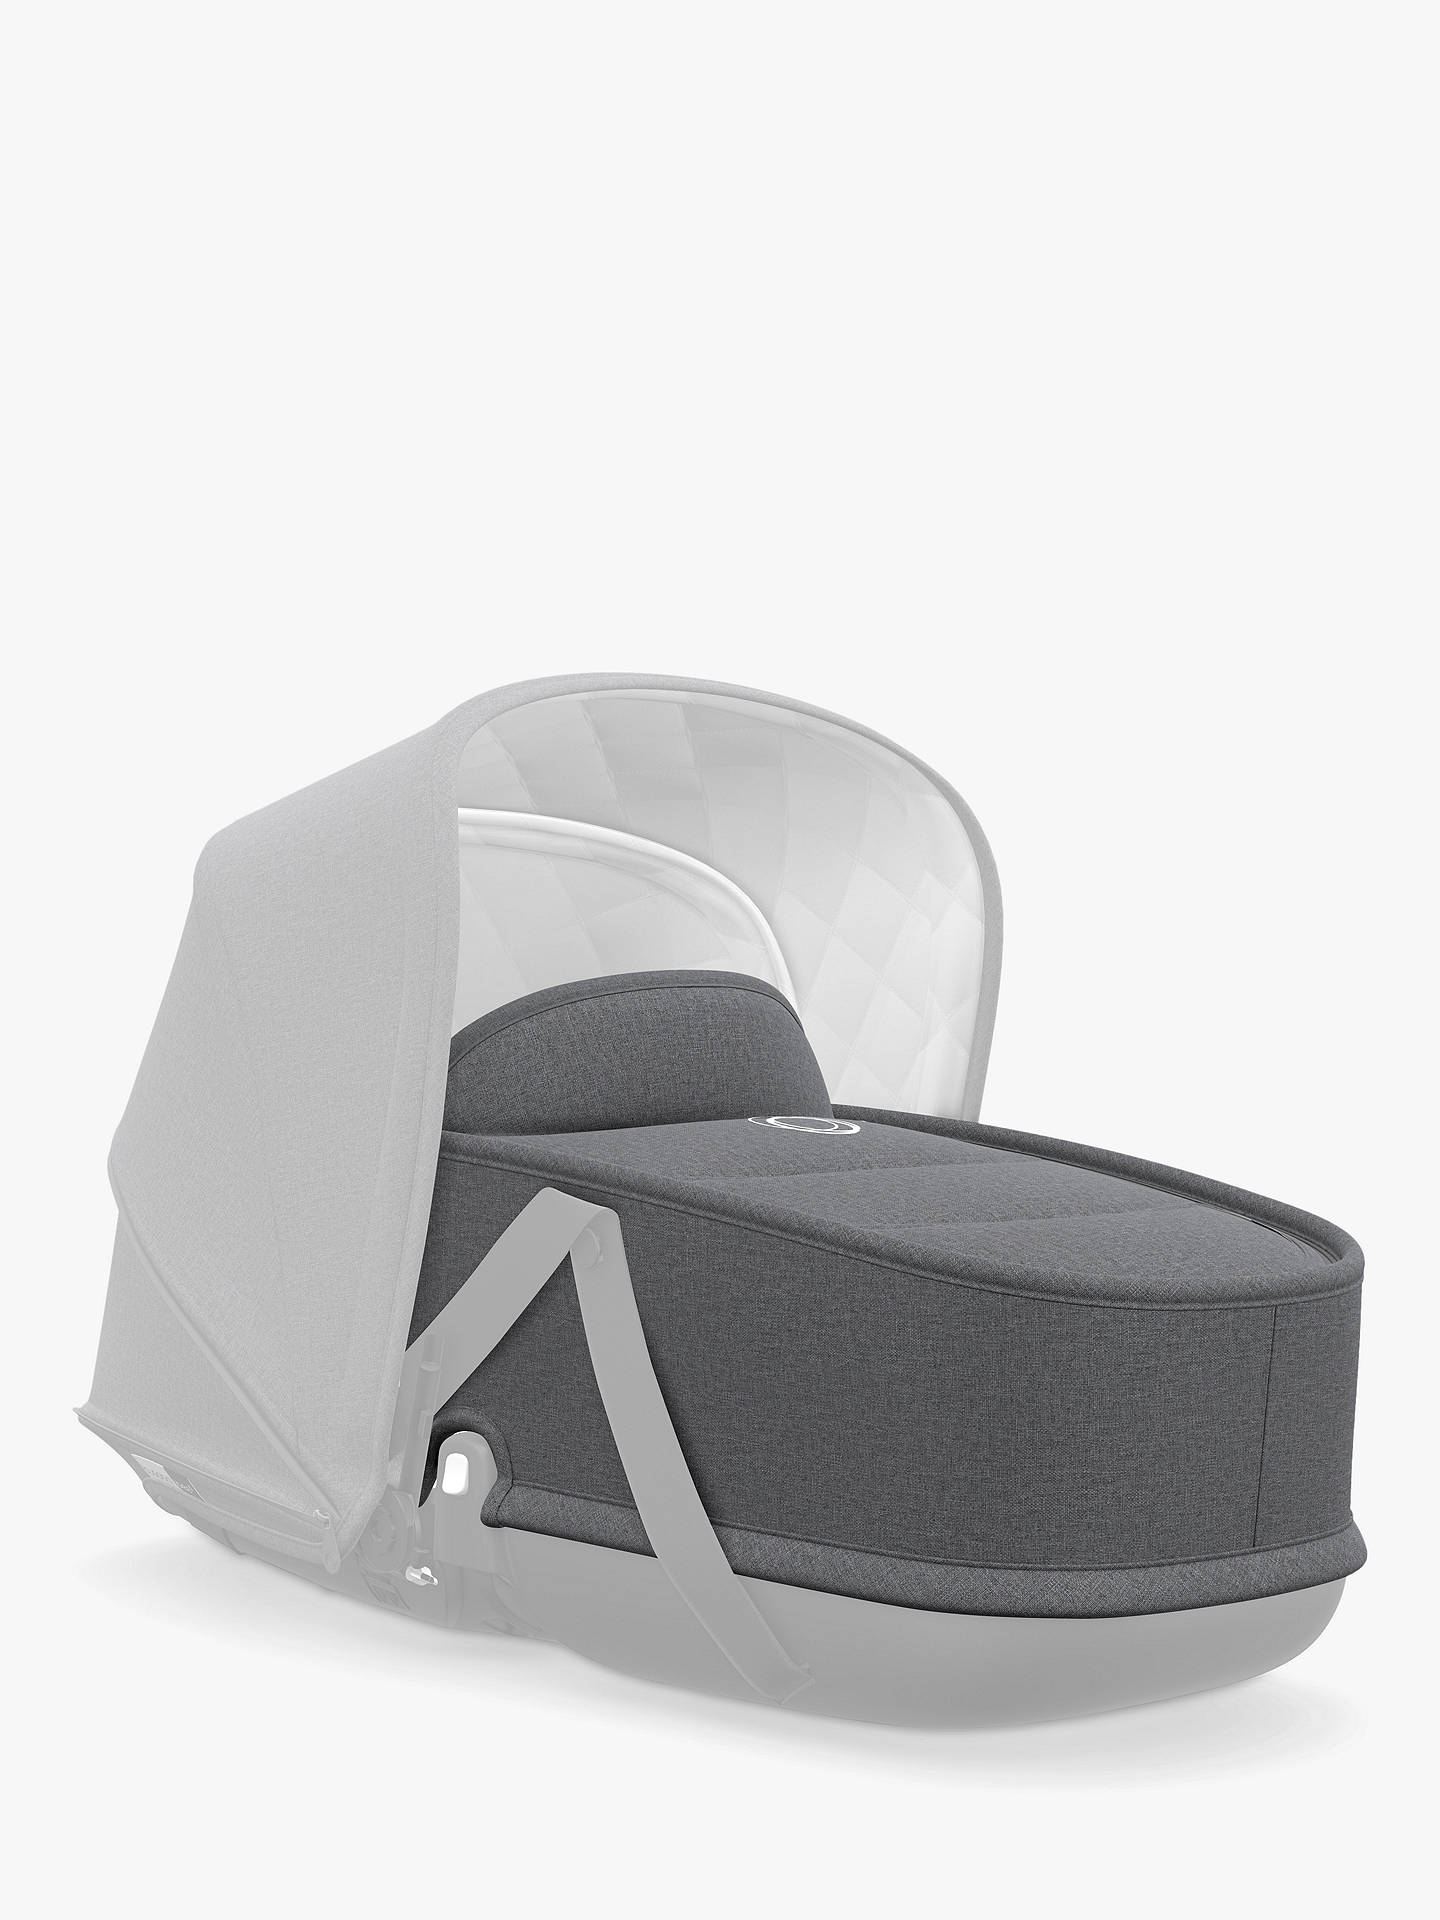 BuyBugaboo Bee 5 Carrycot Fabric, Grey Melange Online at johnlewis.com